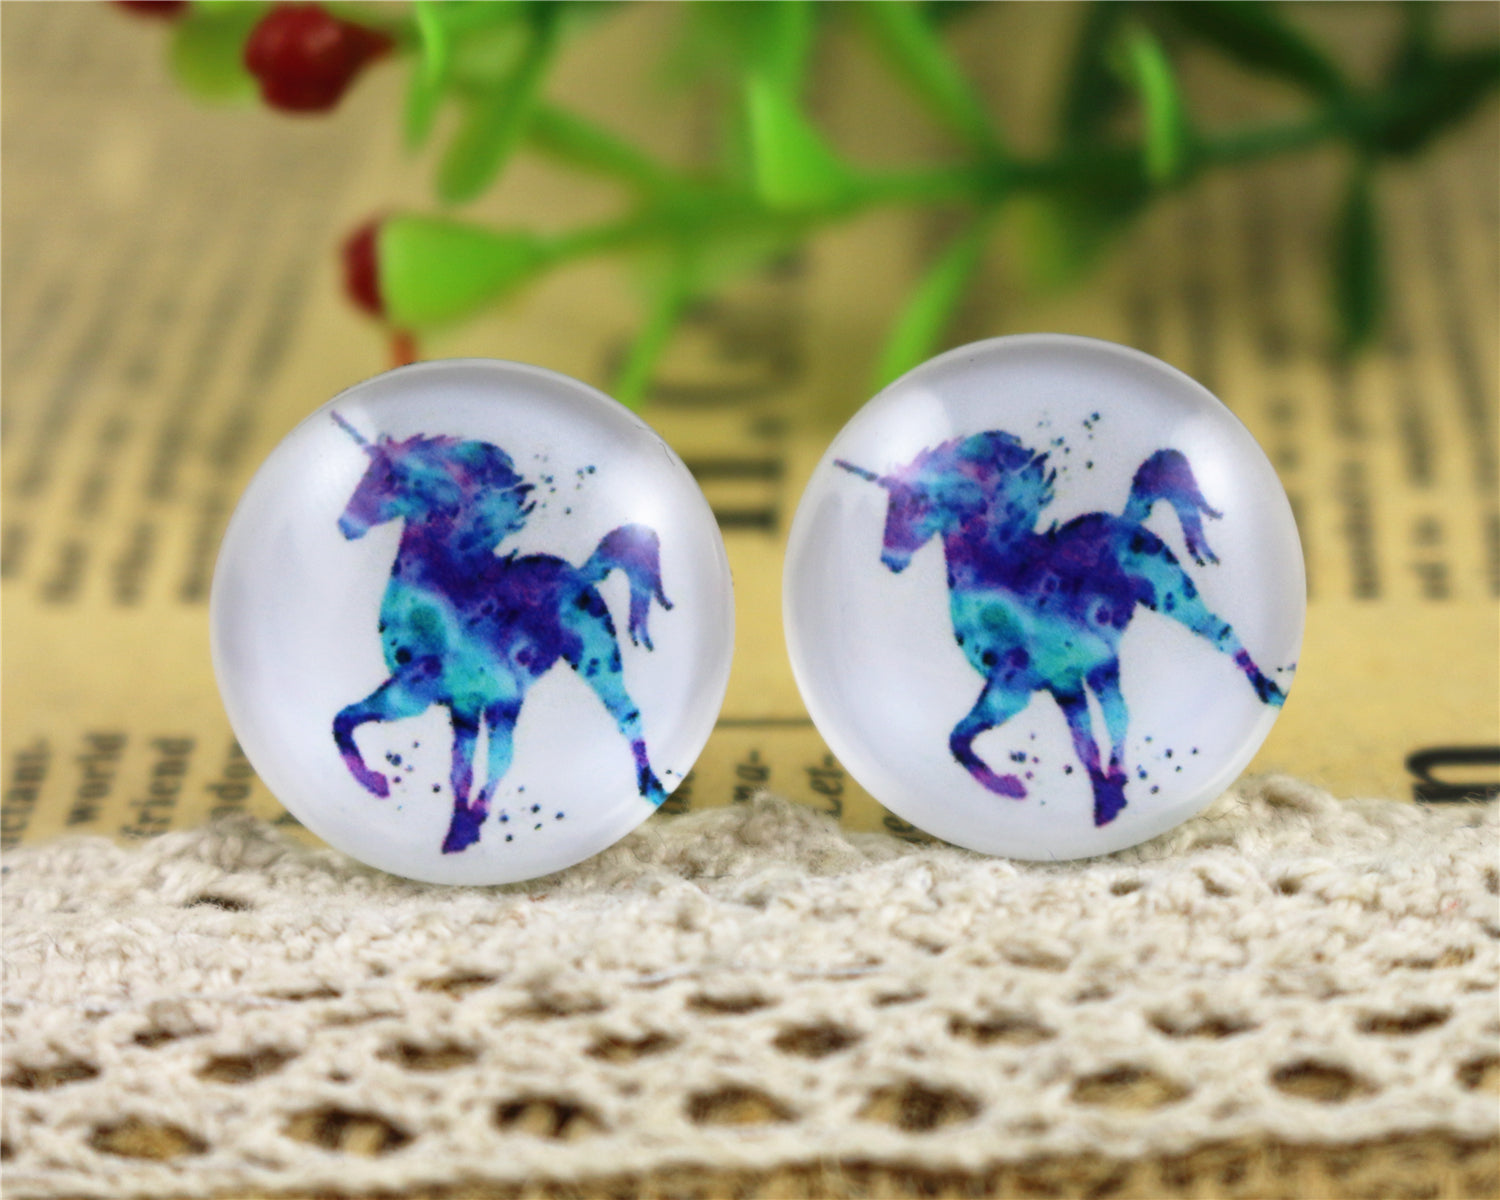 20mm Round Glass Cabochons Handmade Horse And Elephant Design Pattern Jewelry Accessories Supplies